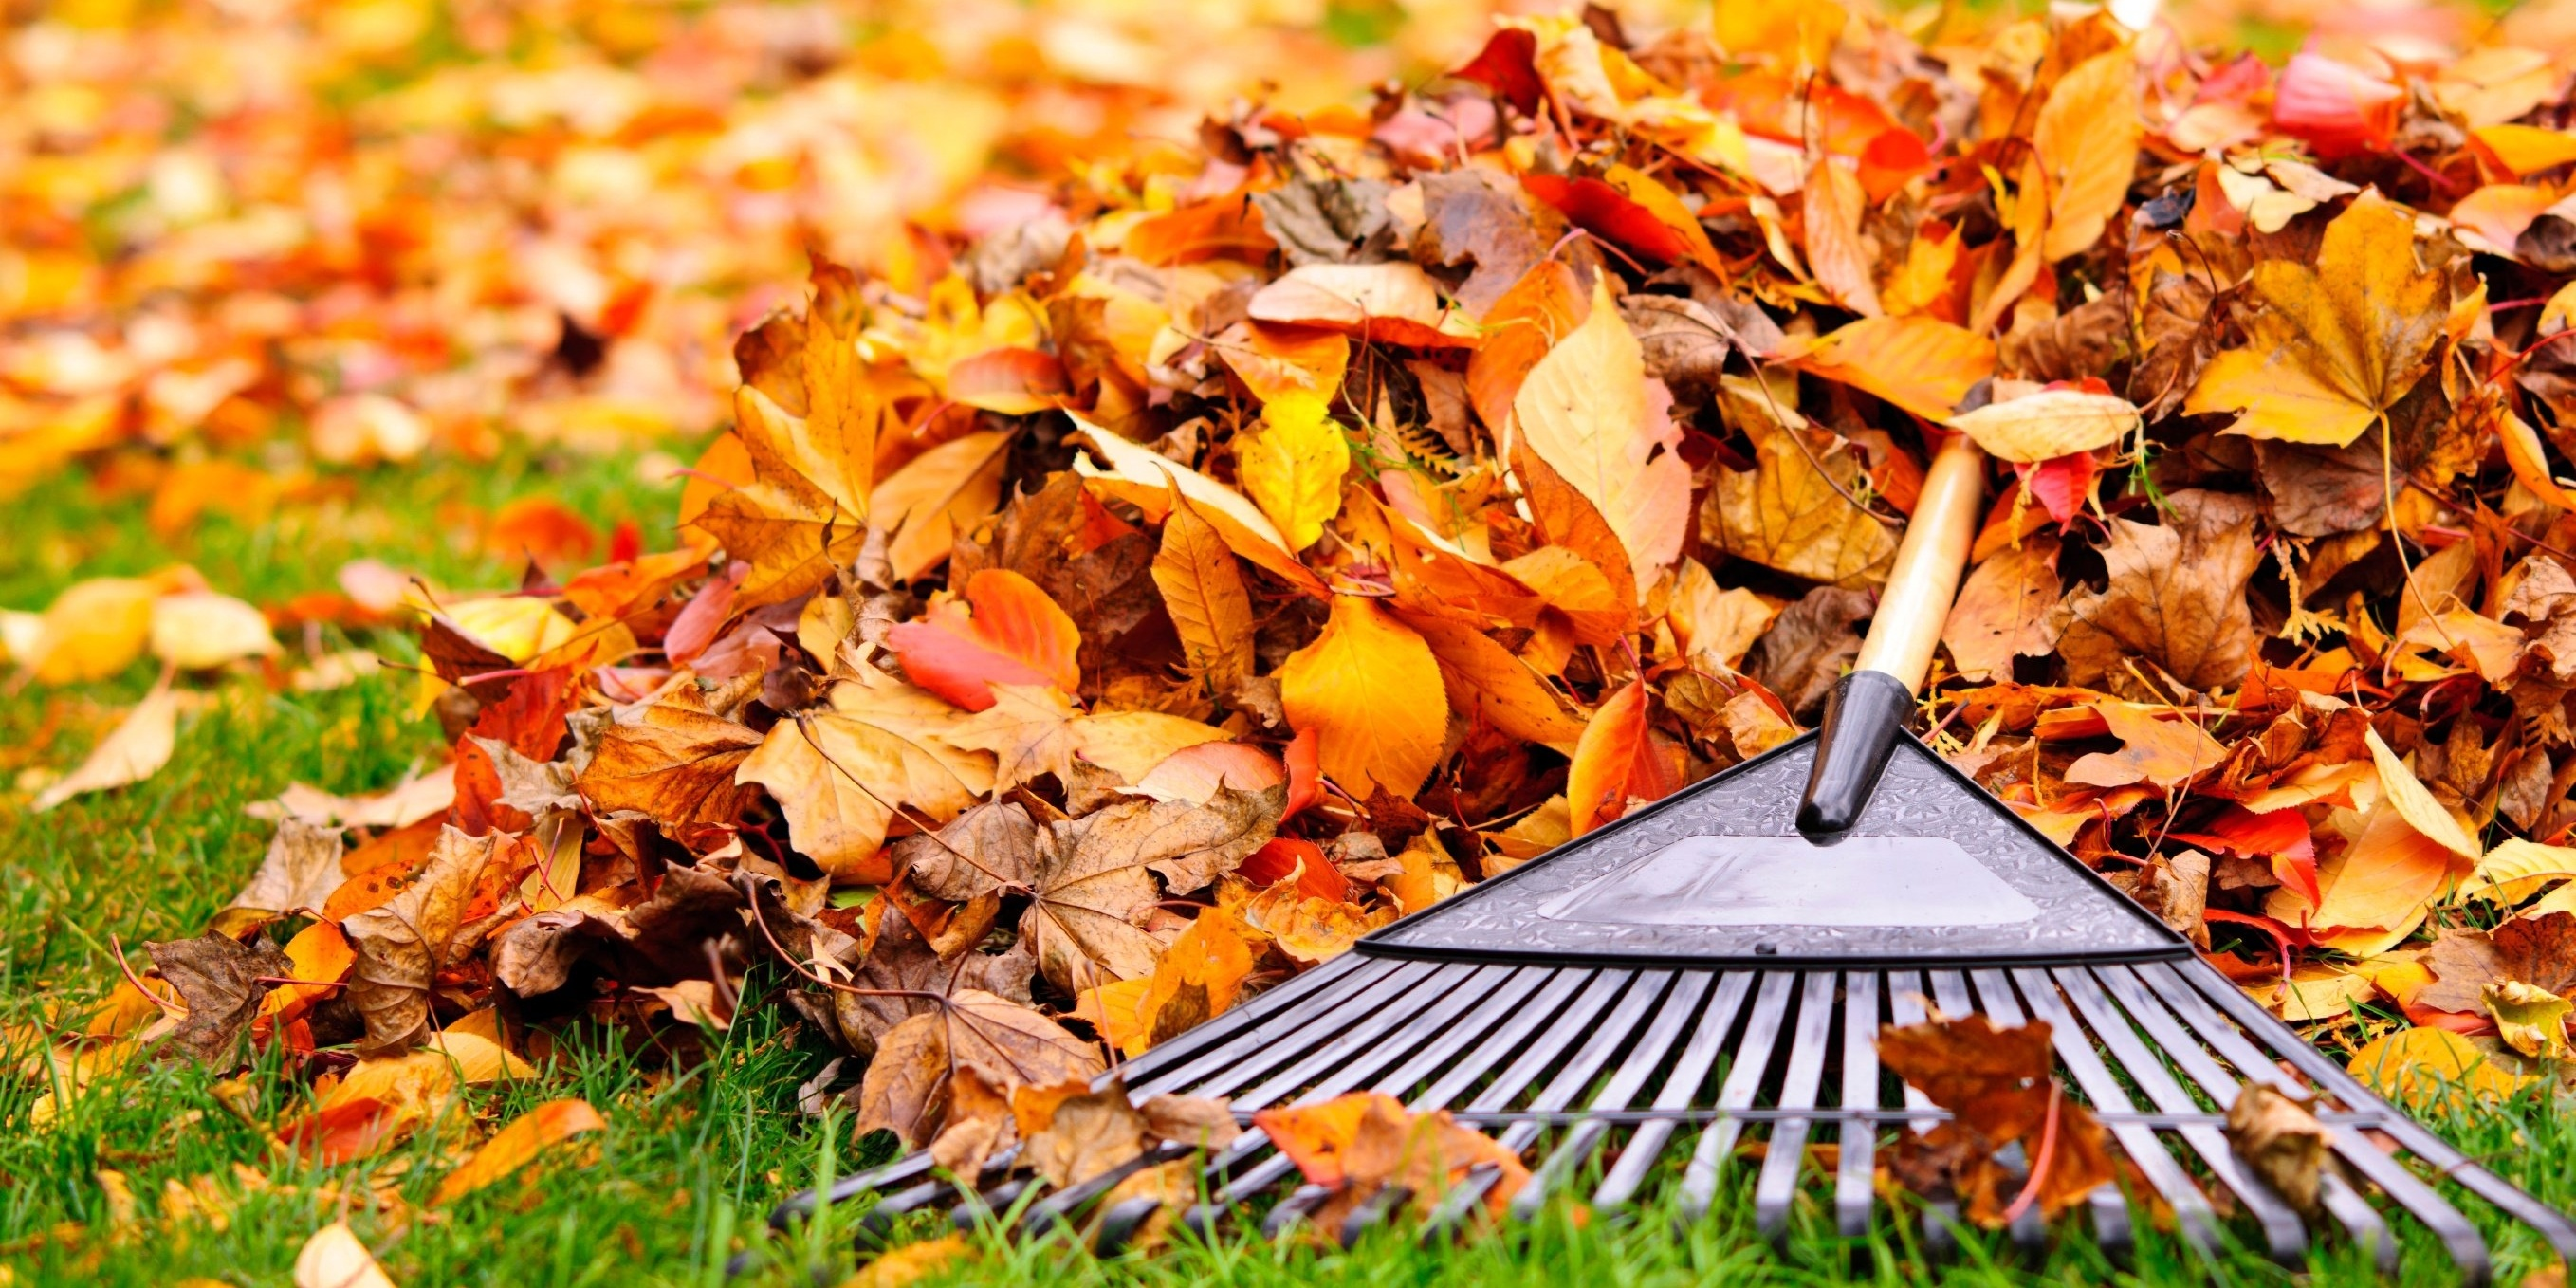 Letting leaves accumulate is potentially damaging to your grass blades, since you're restricting the amount of sunlight they need to build winter hardiness.